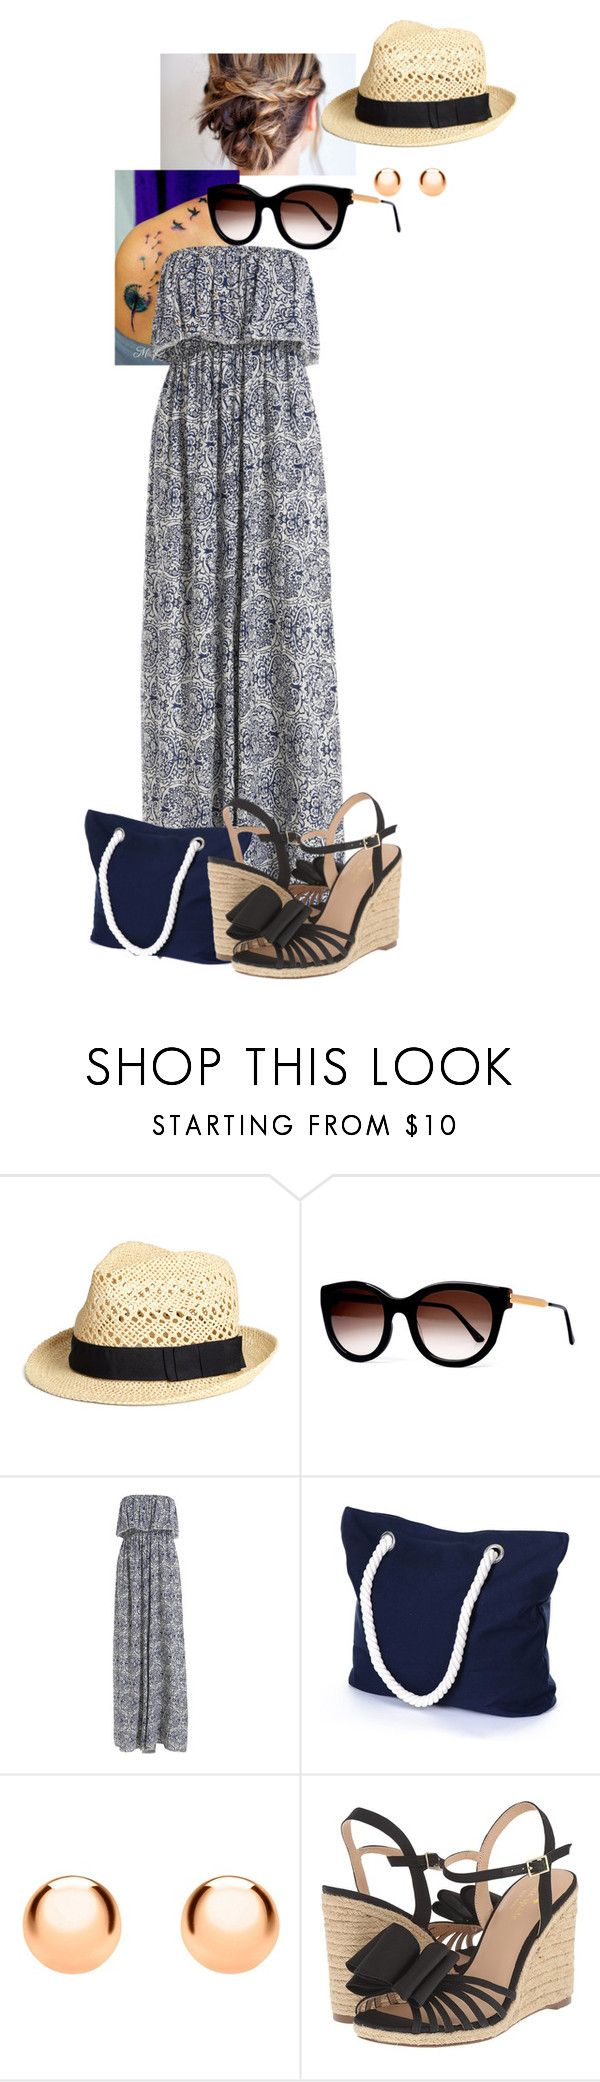 """""""Day on the water front"""" by huntress-383 ❤ liked on Polyvore featuring H&M, Thierry Lasry, IBB and Kate Spade"""